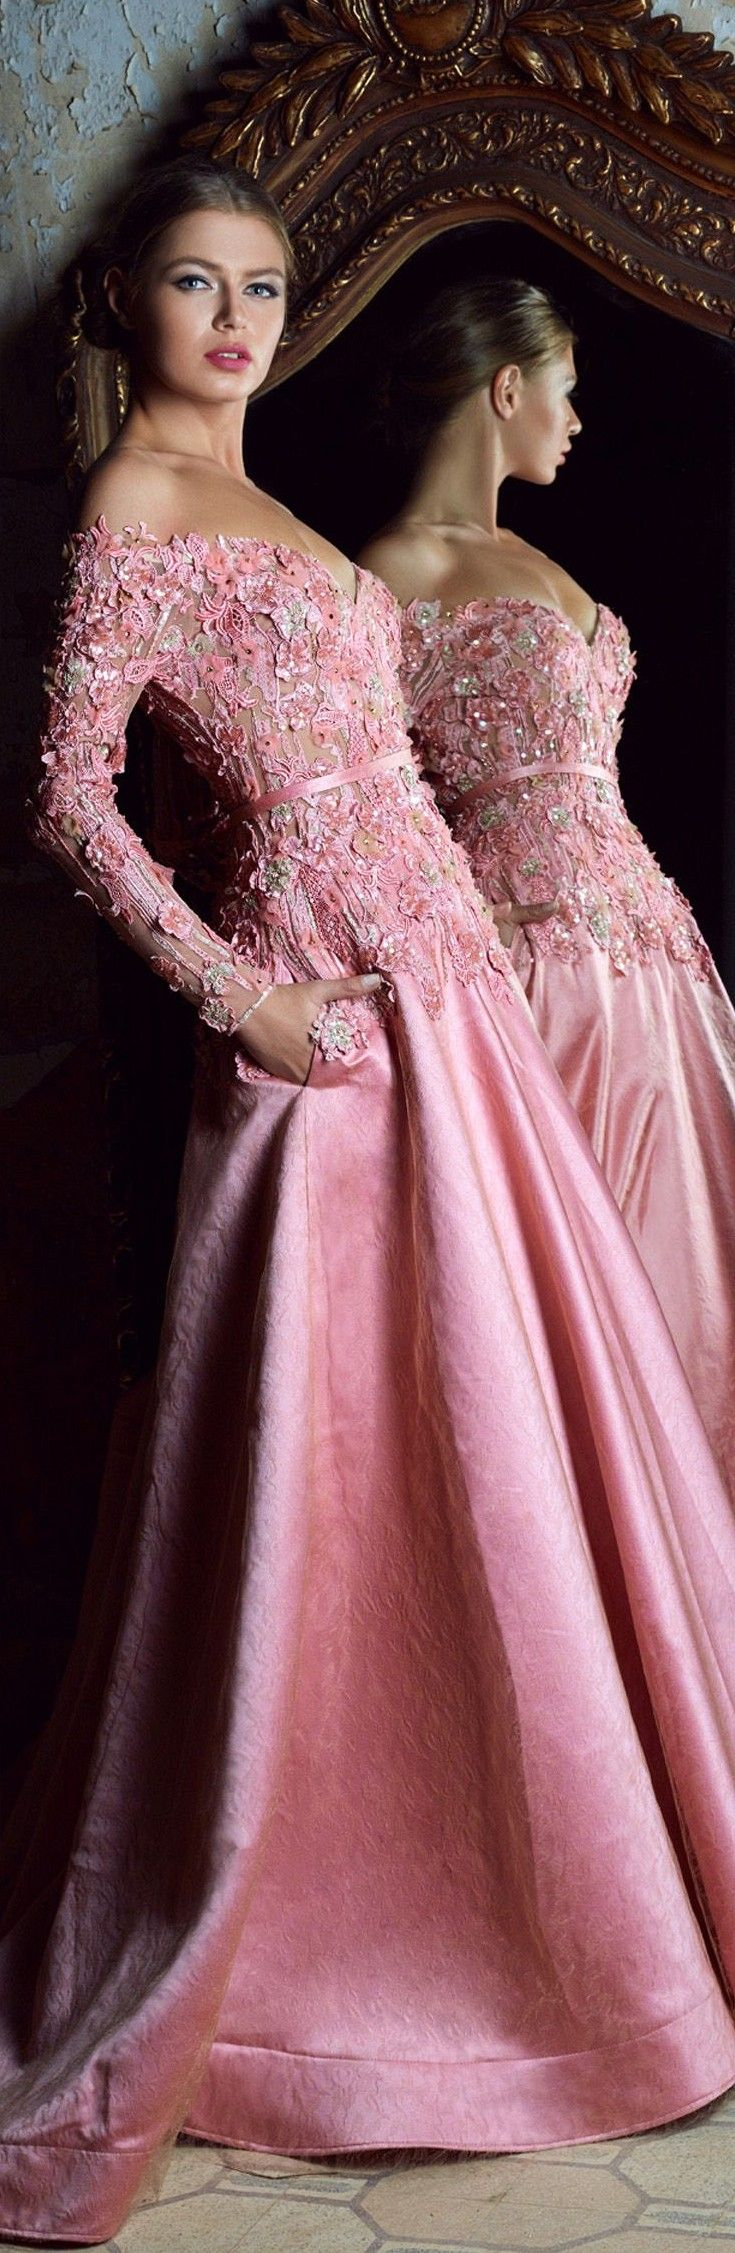 169 best Fashion images on Pinterest | Formal prom dresses, Ball ...